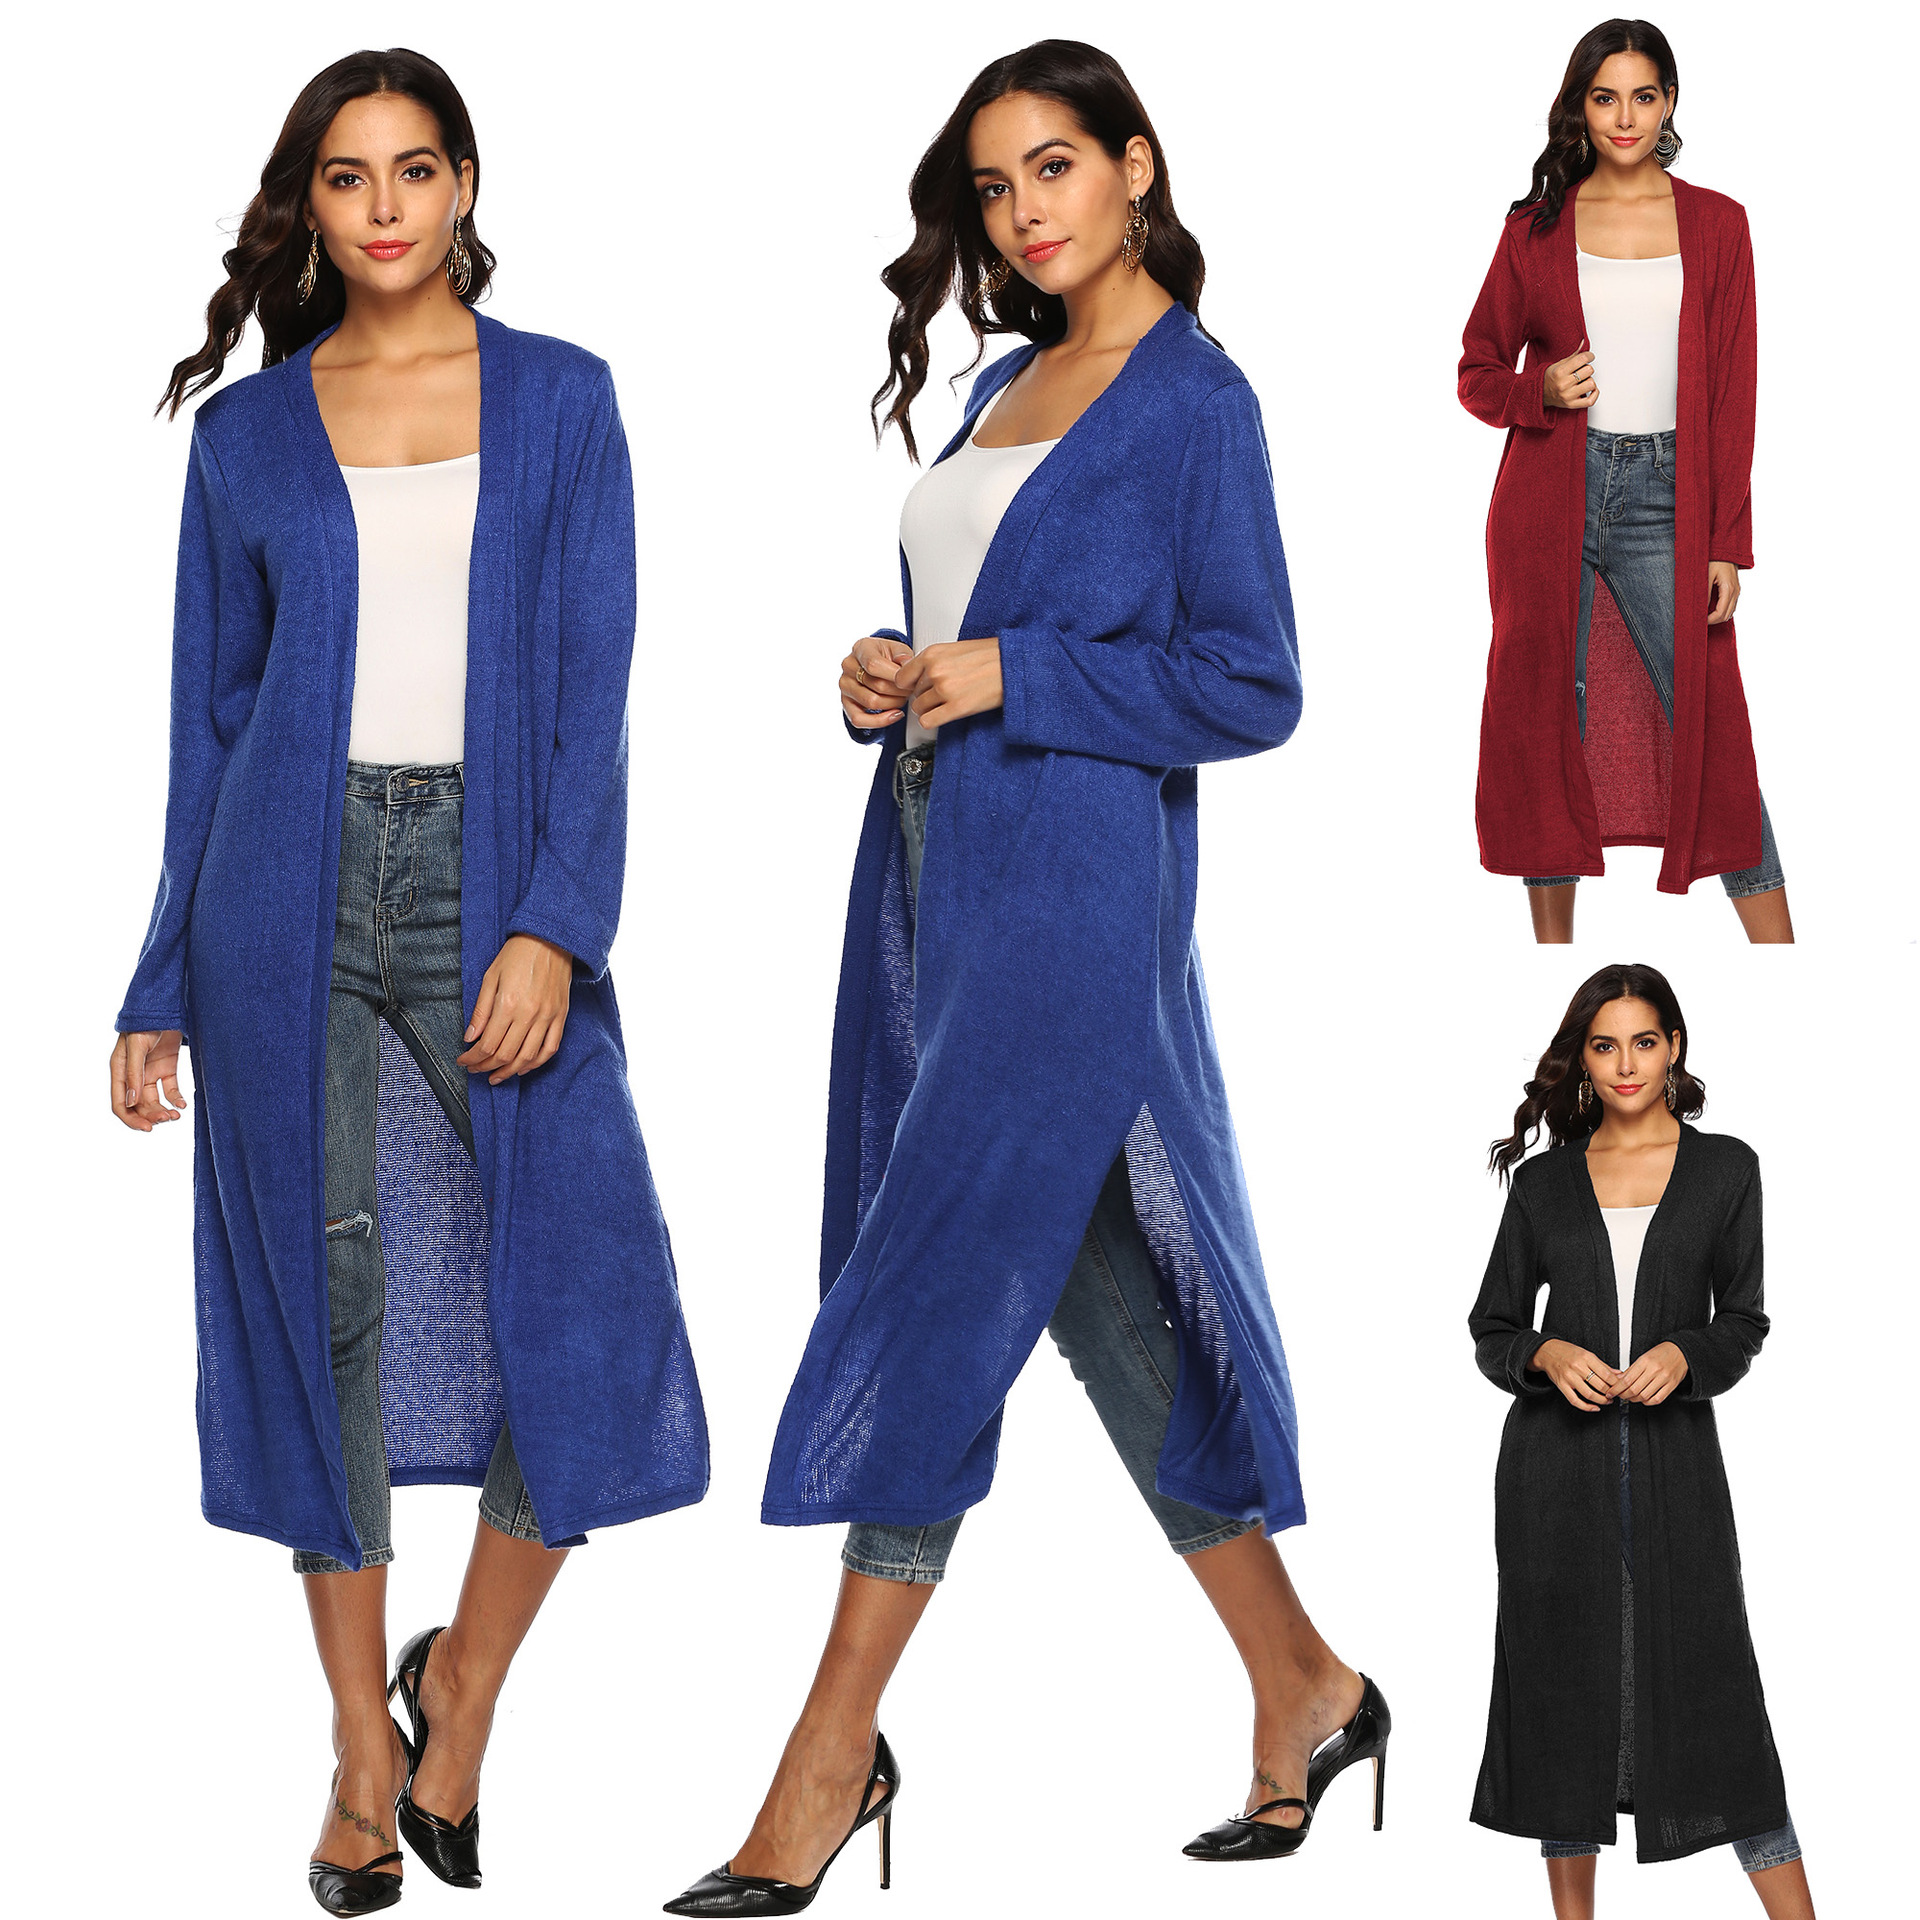 autumn and winter hot sale basic solid woman coat X Long flocking O Neck open stitch loose plus size 2019 female coat in Wool amp Blends from Women 39 s Clothing